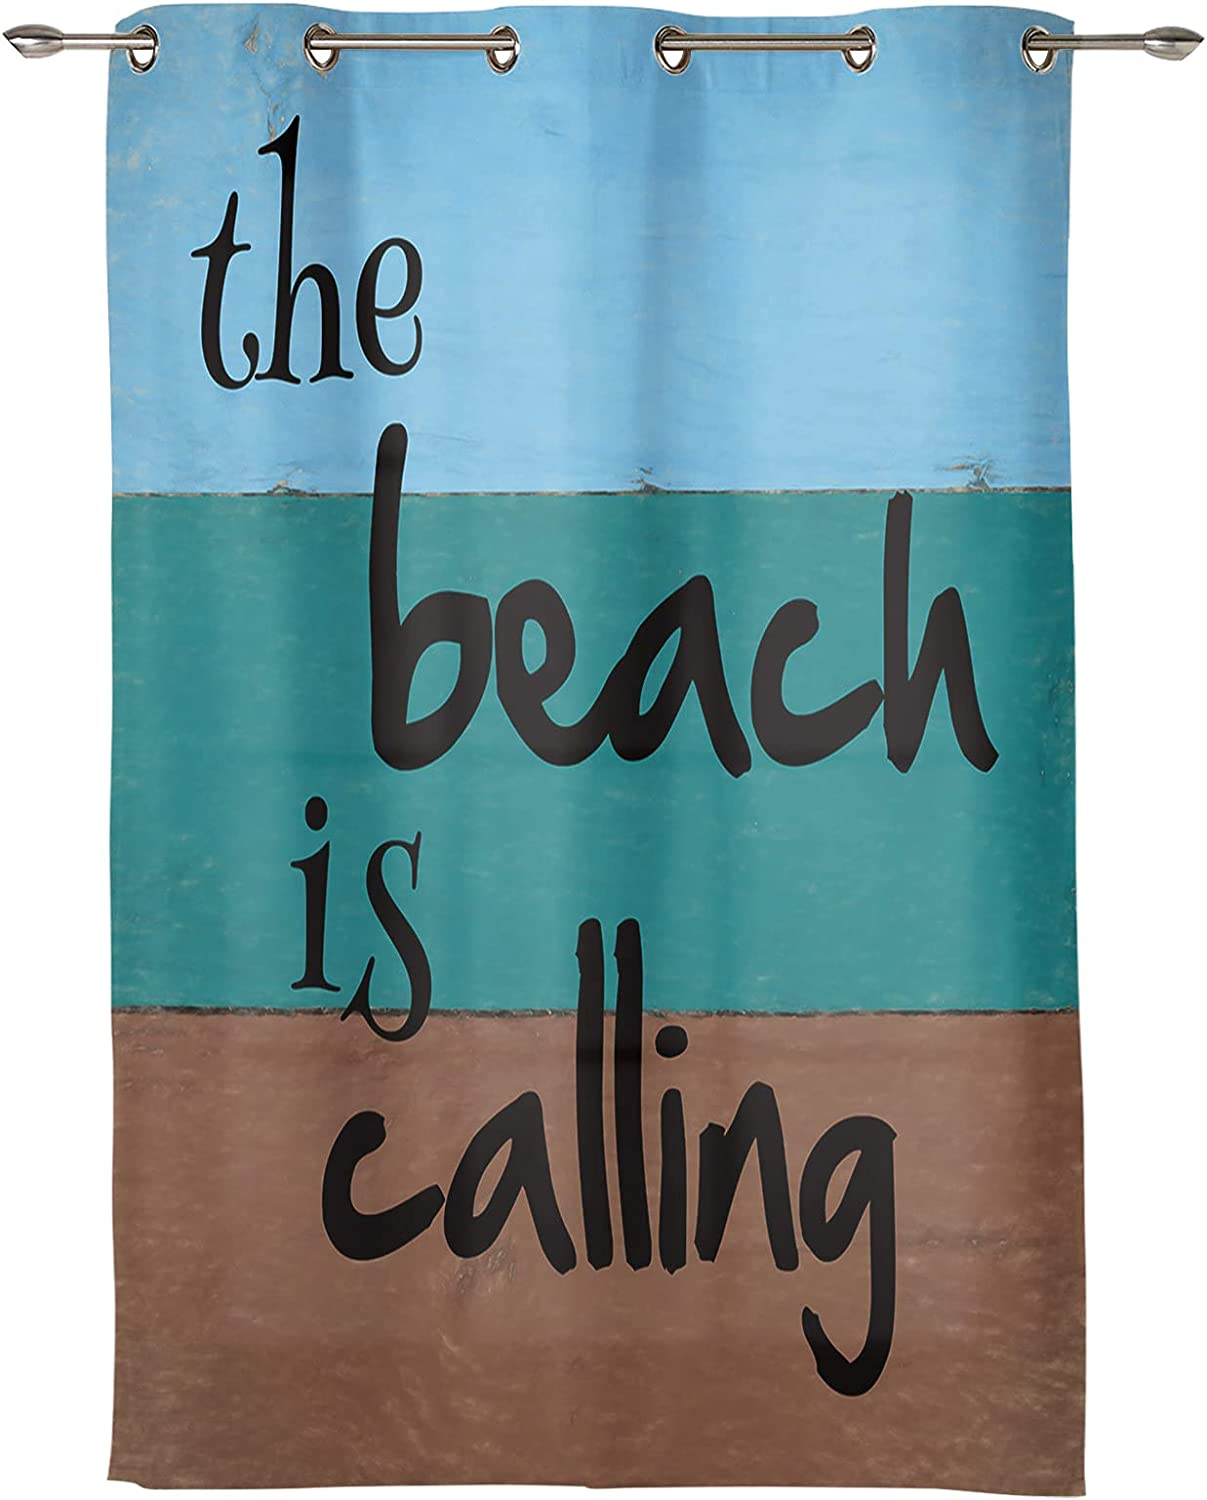 The Large discharge sale Some reservation Beach is Calling Summer Curtain Grommet Stripes Home Decor